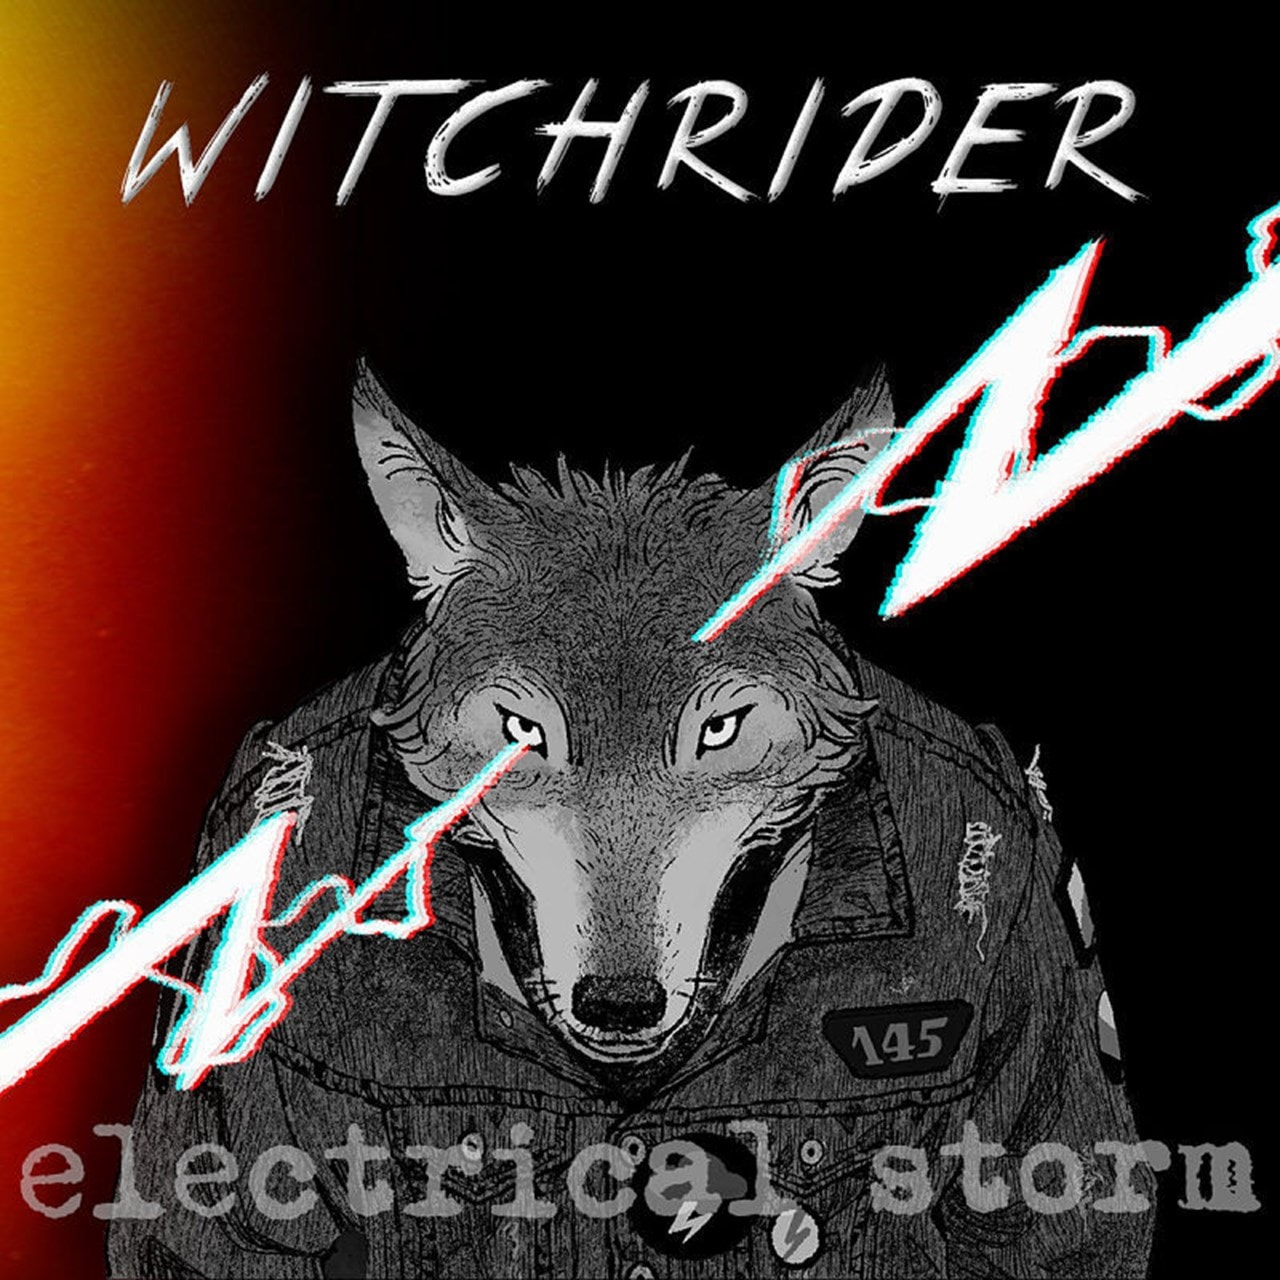 Electrical Storm - 1